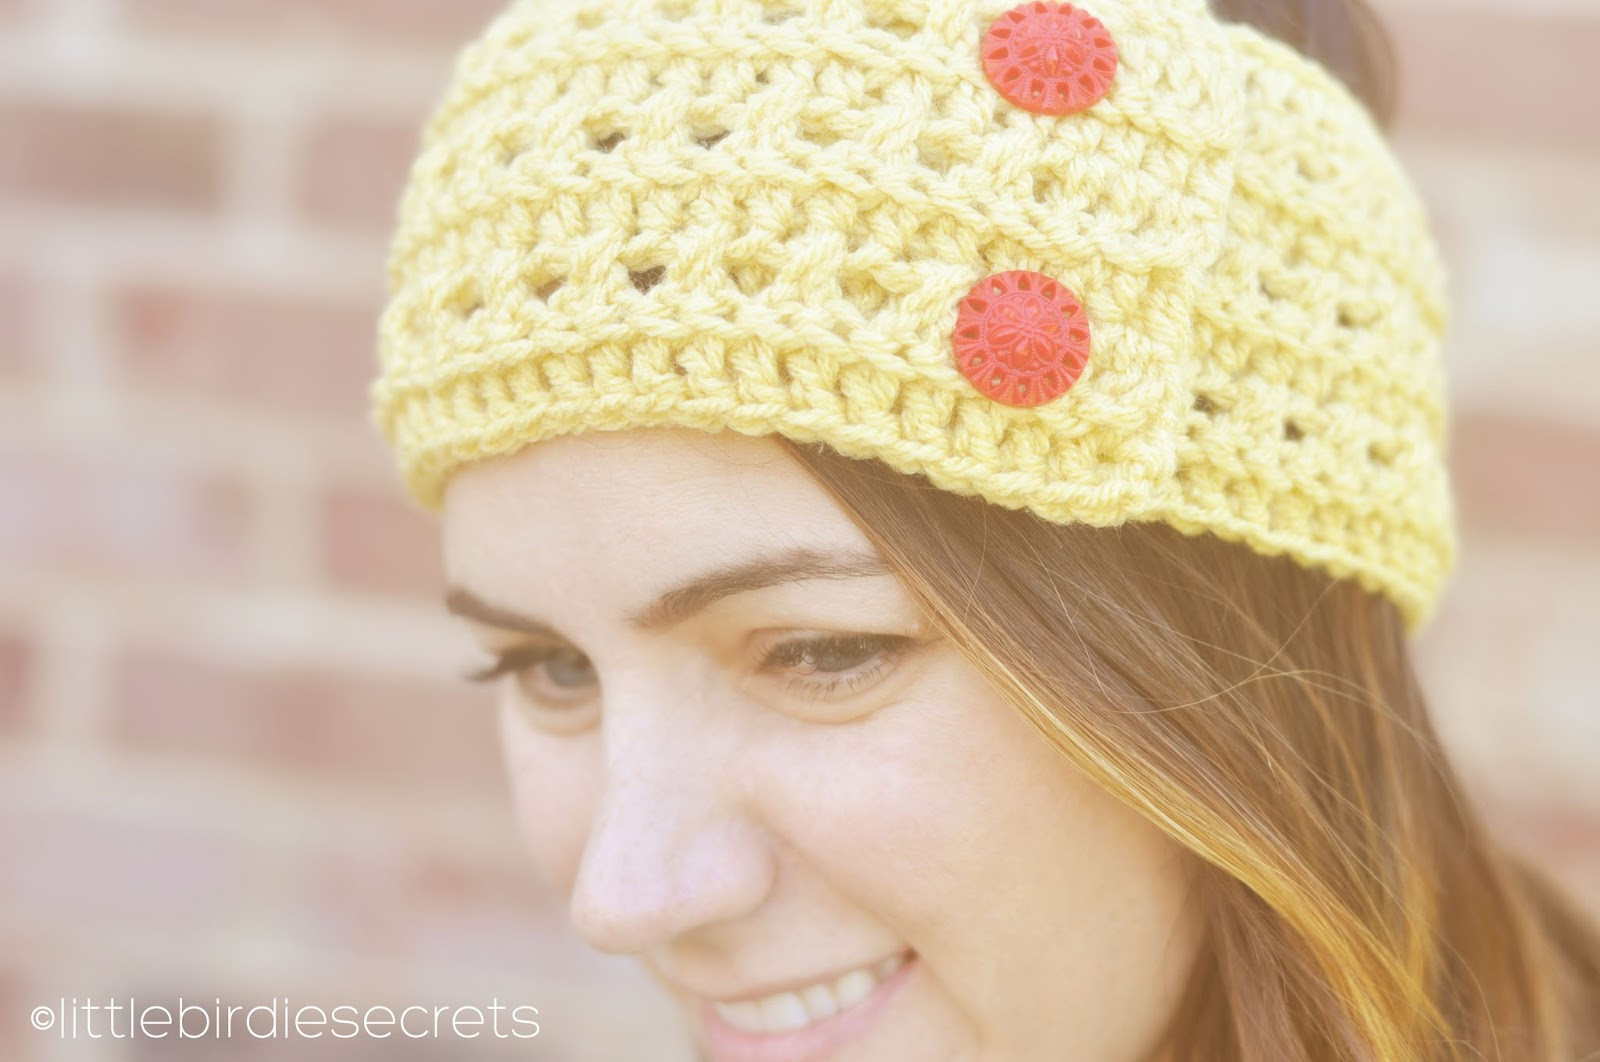 Best Of Free Crochet Headband and Cuff Pattern Crochet Patterns for Headbands Of Lovely 49 Ideas Crochet Patterns for Headbands